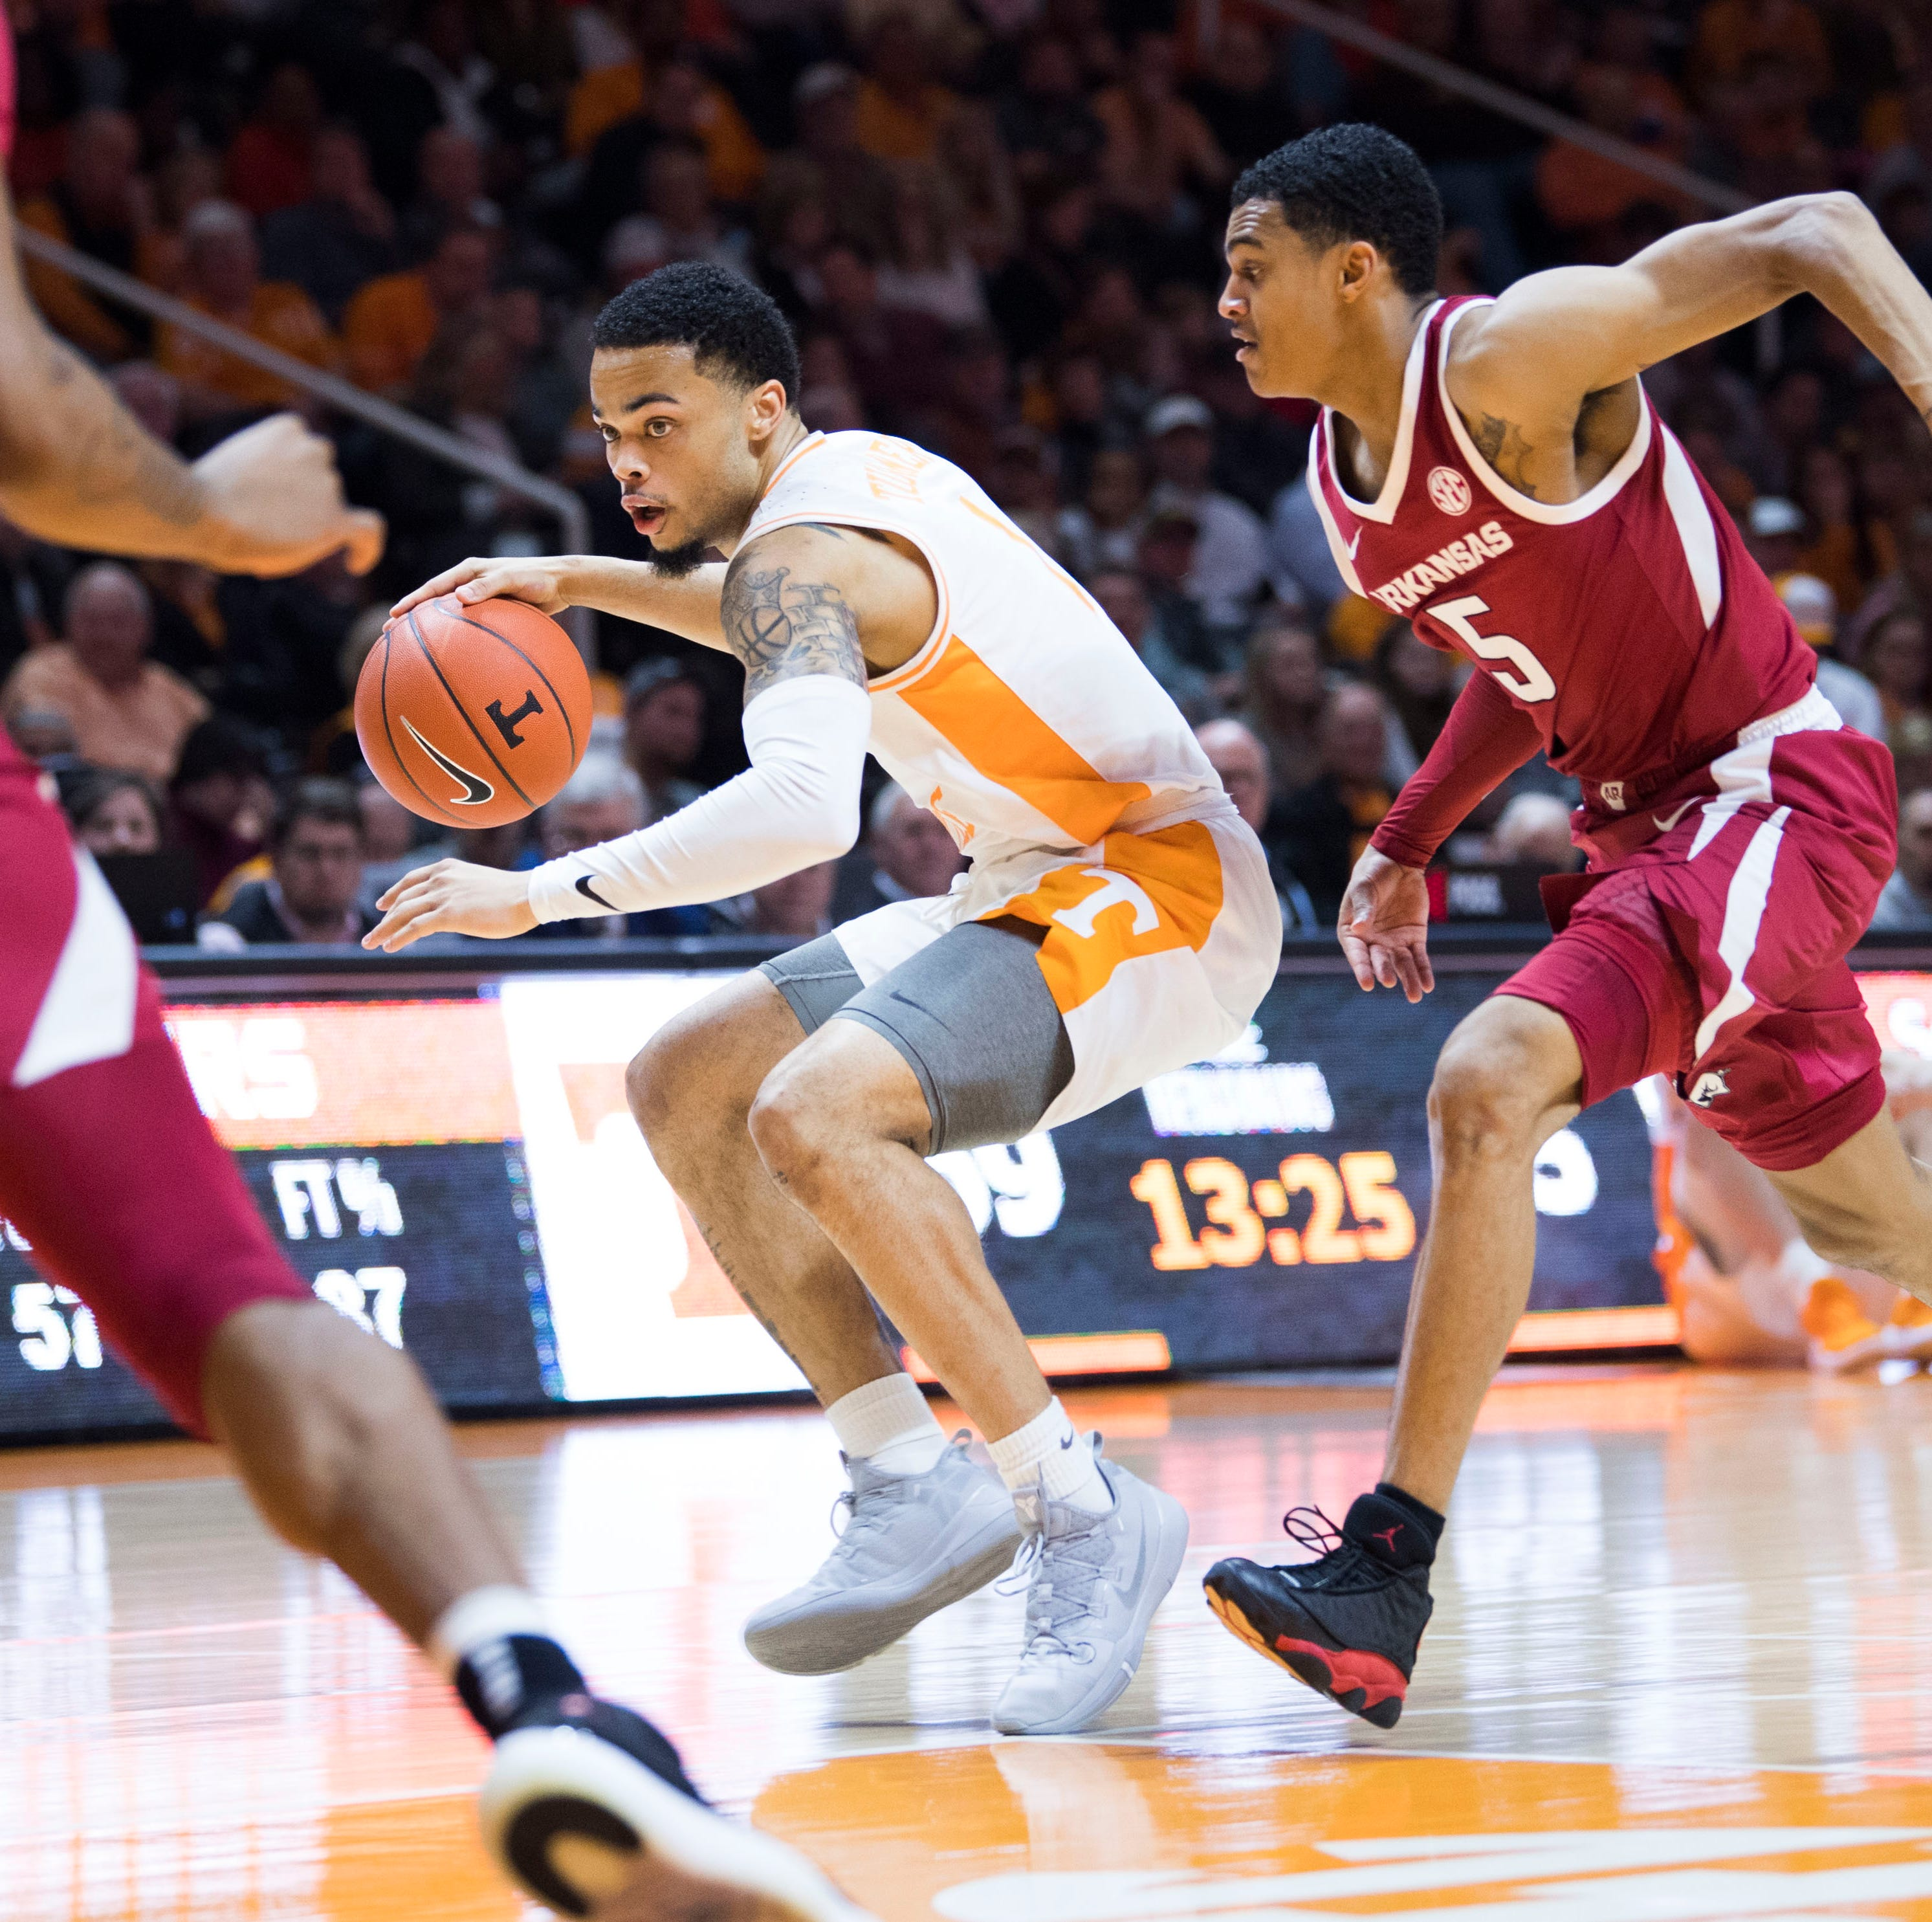 UT Vols: Is Tennessee basketball the best team in the country?